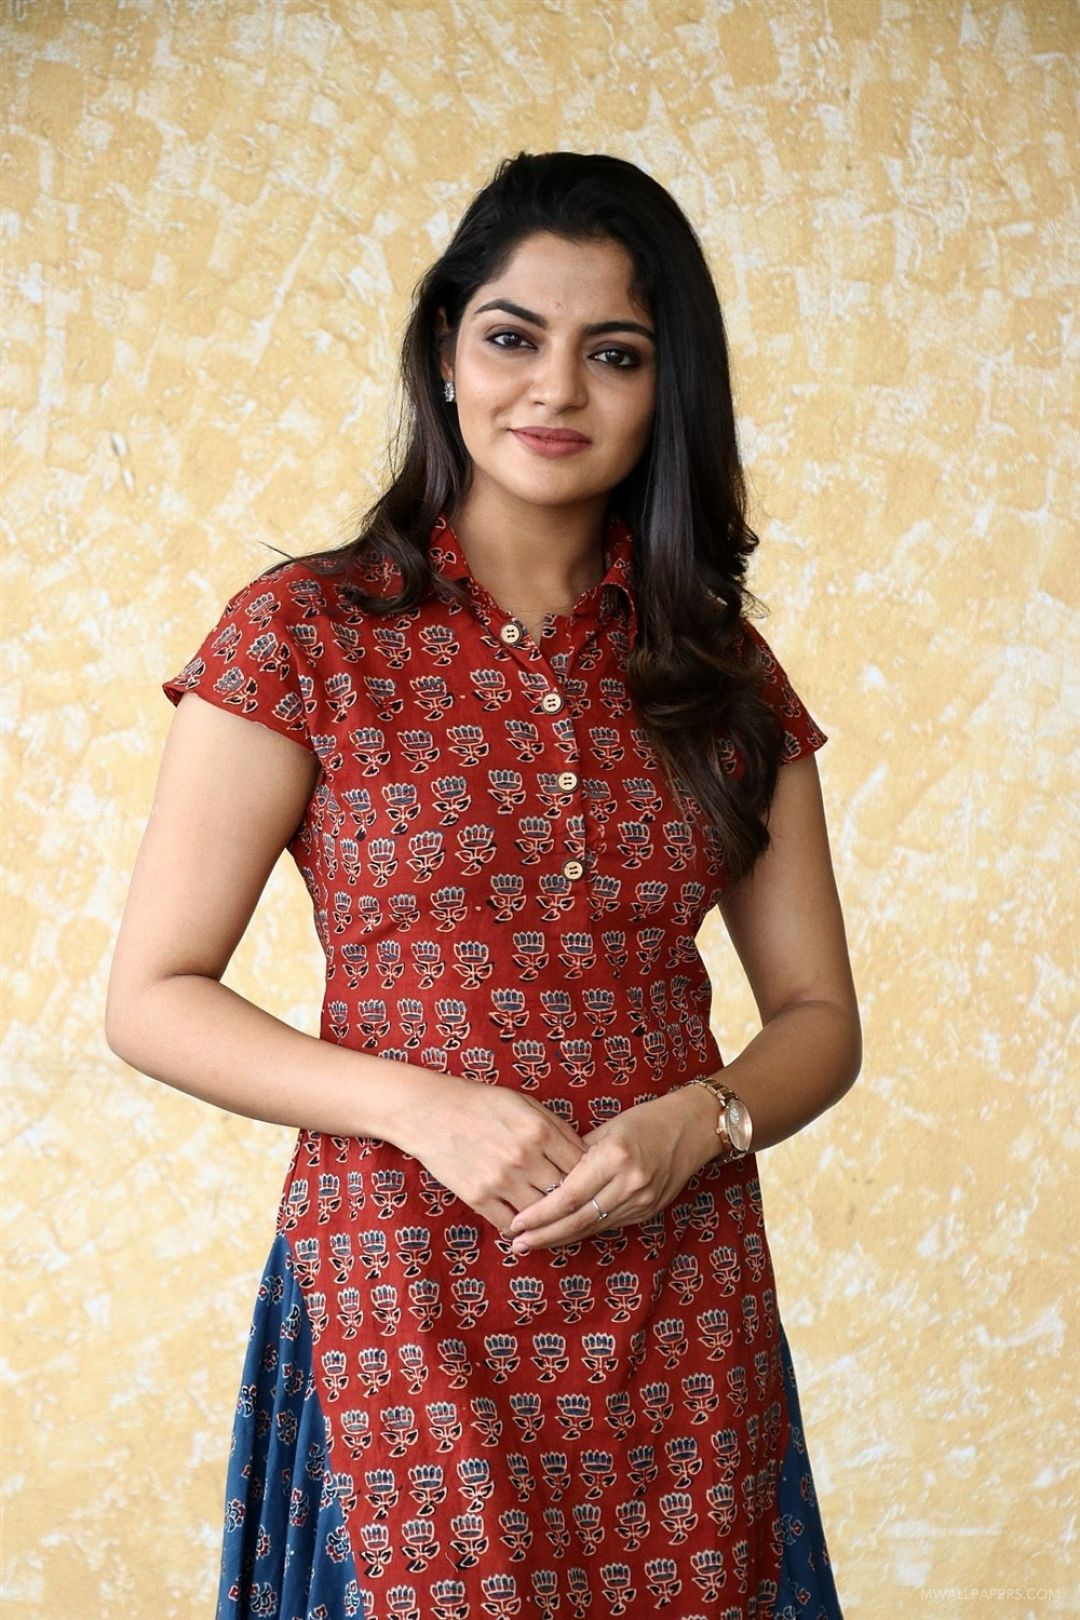 Nikhila Vimal HD Wallpapers (Desktop Background / Android / iPhone) (1080p, 4k) (42495) - Nikhila Vimal